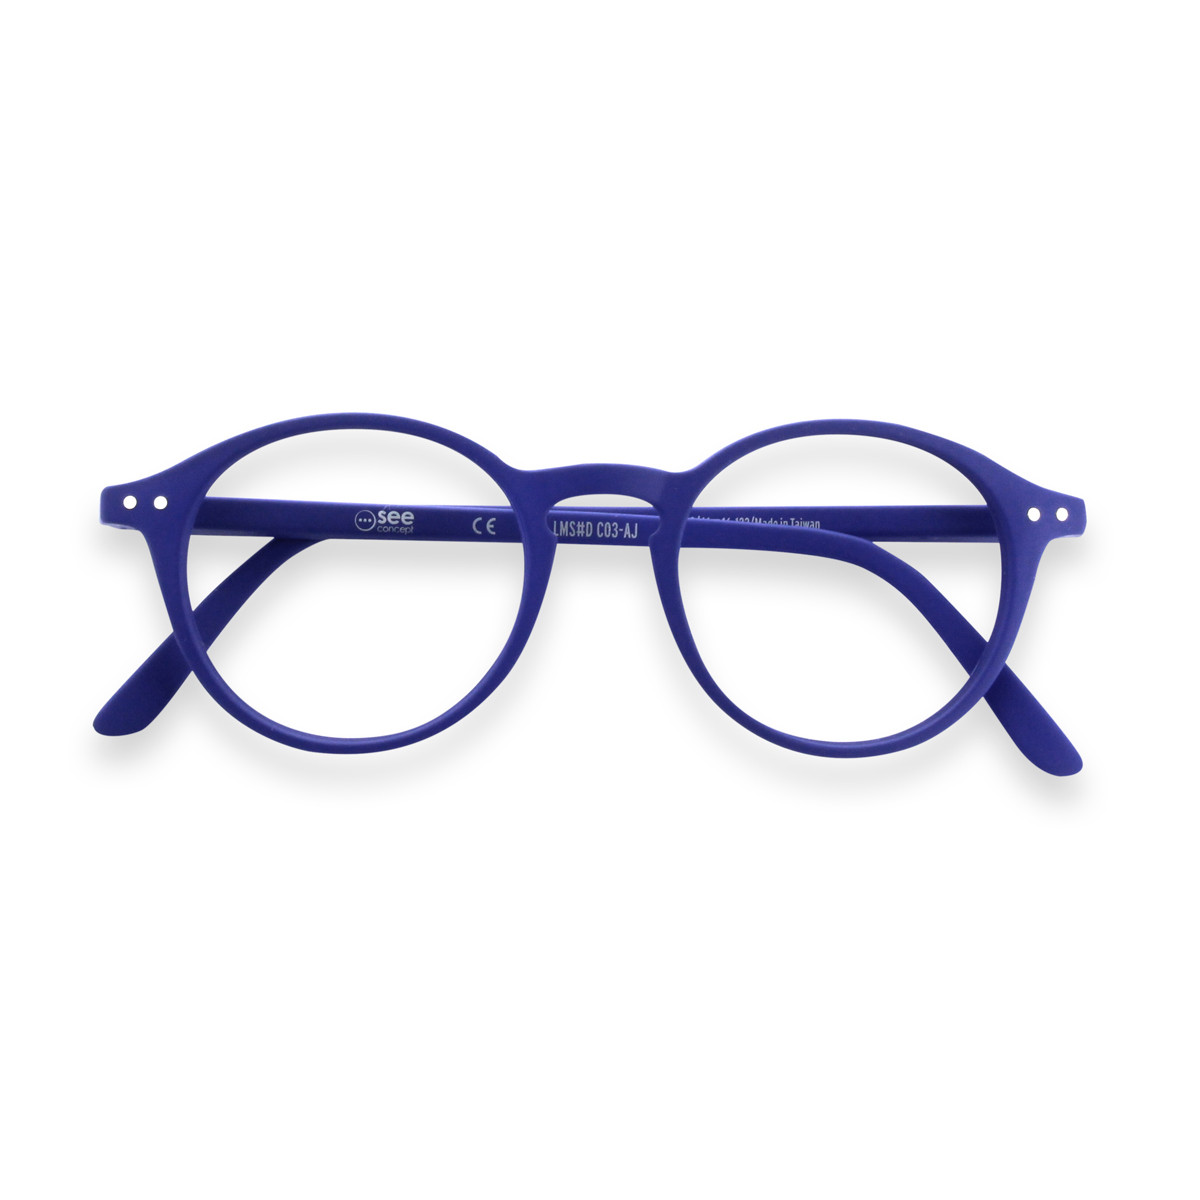 Izipizi new style reading glasses - navy blue